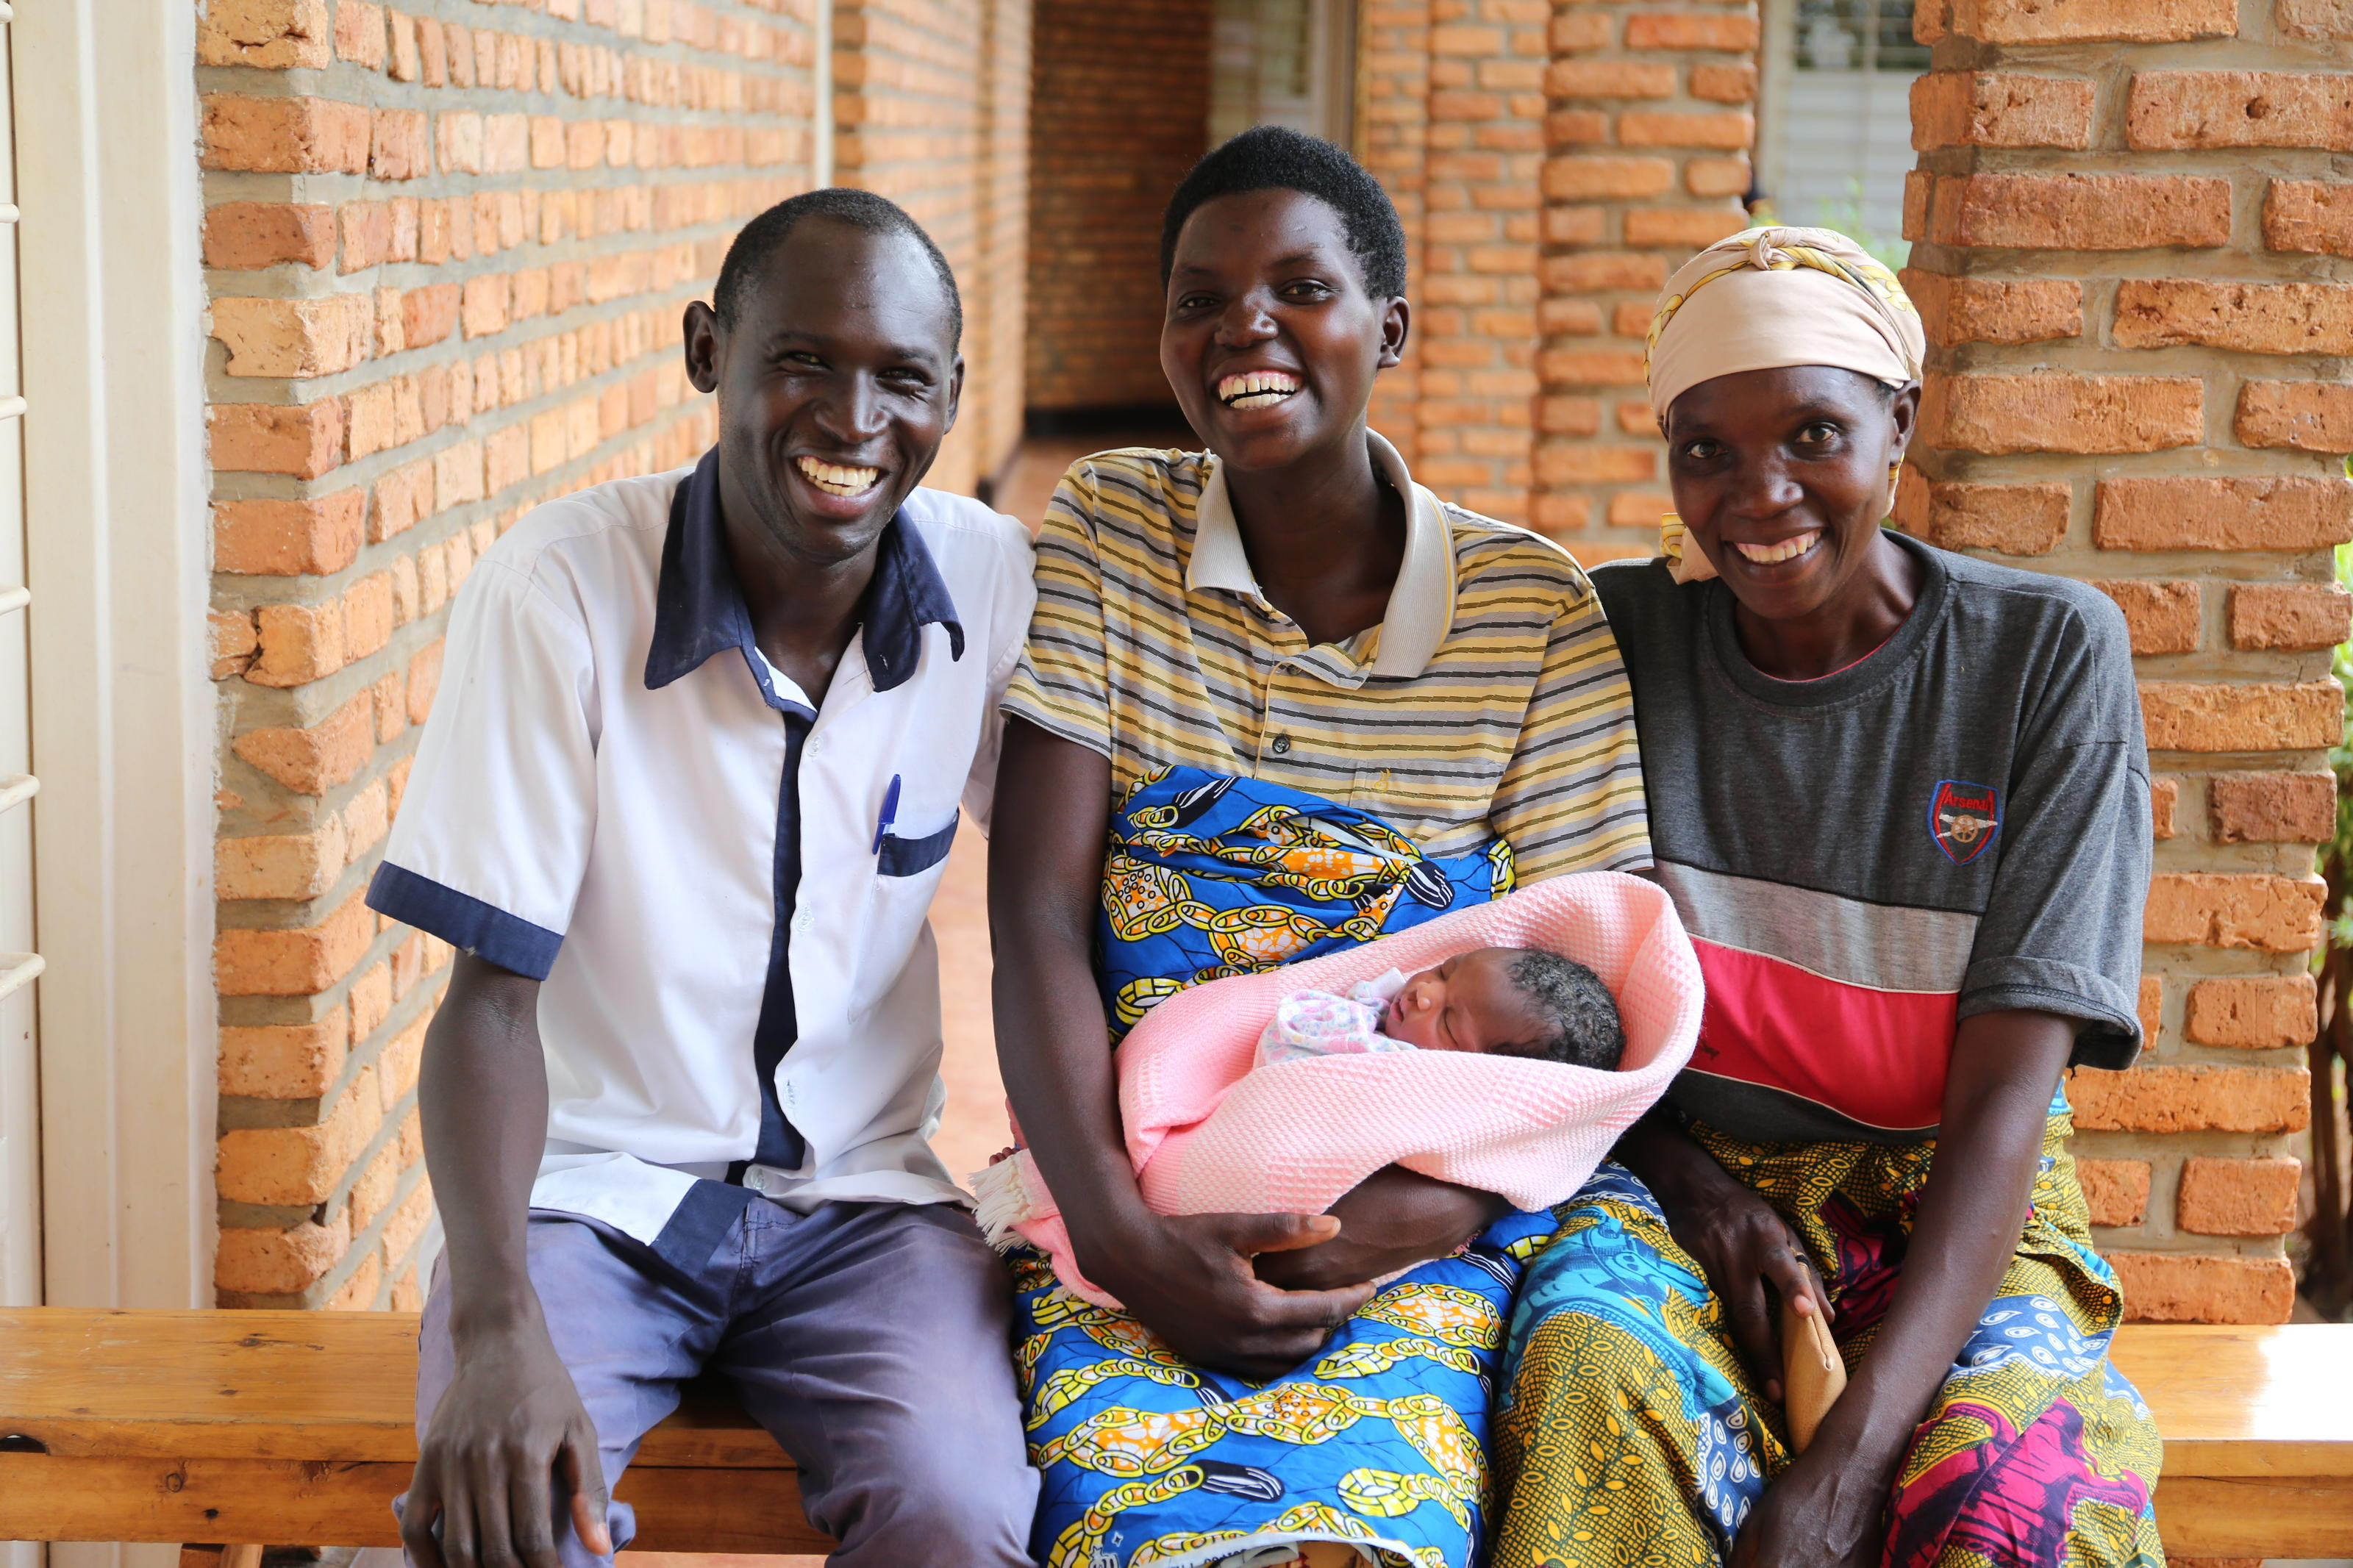 Nurse Samuel with Ruth and her baby and her mother at Nzangwa Health Centre, which was funded by WaterAid's Deliver Life campaign.